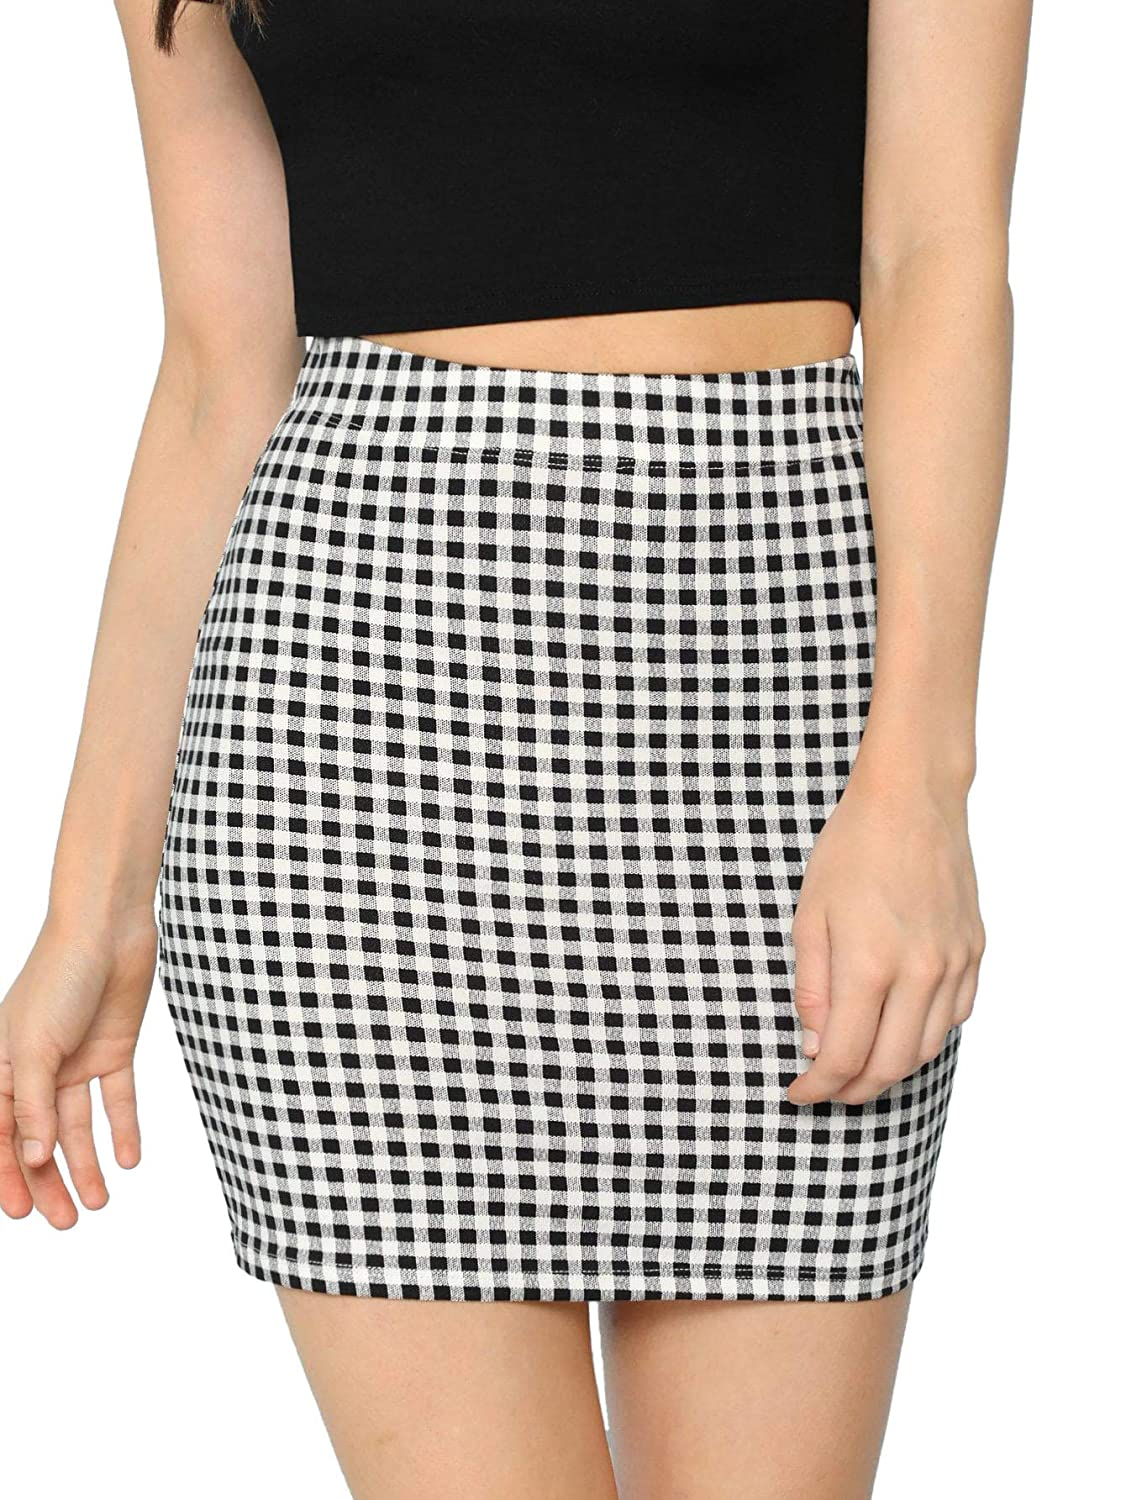 Grey SheIn Women's Basic Stretch Plaid Mini Bodycon Pencil Skirt